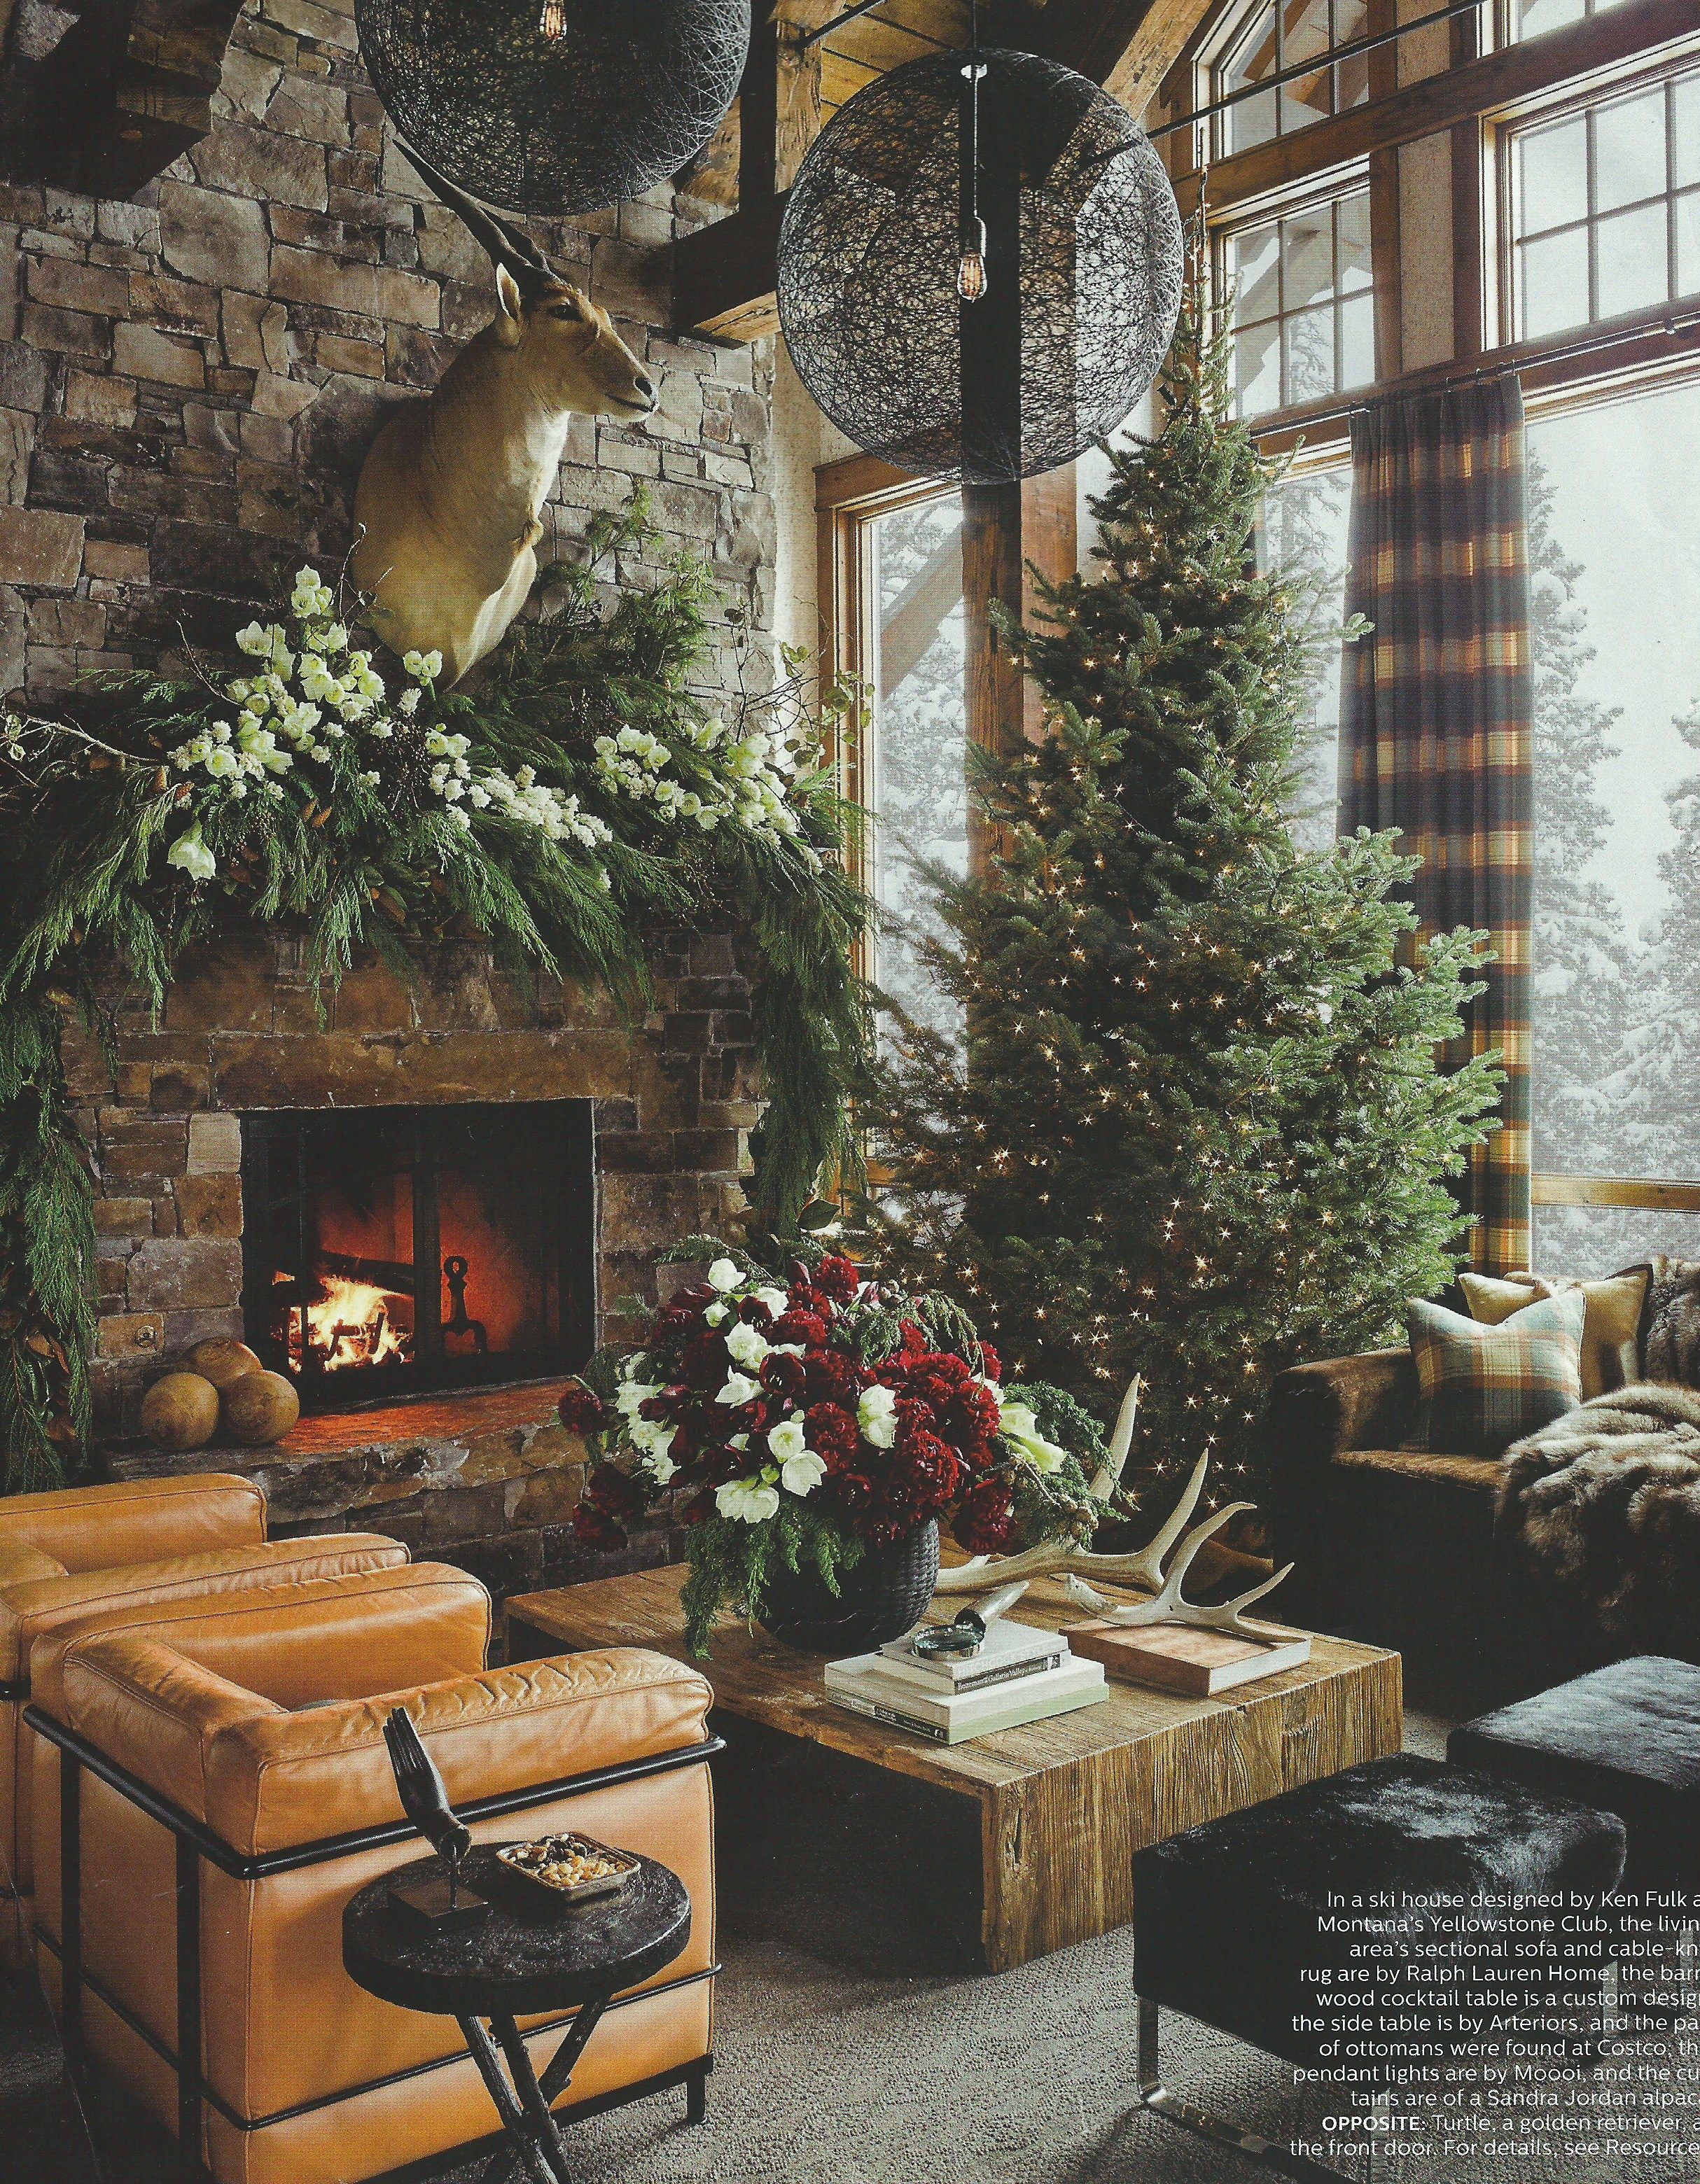 this montana resort home designed by ken fulk and featured on the cover of the december issue of elle decor is not what im typicall